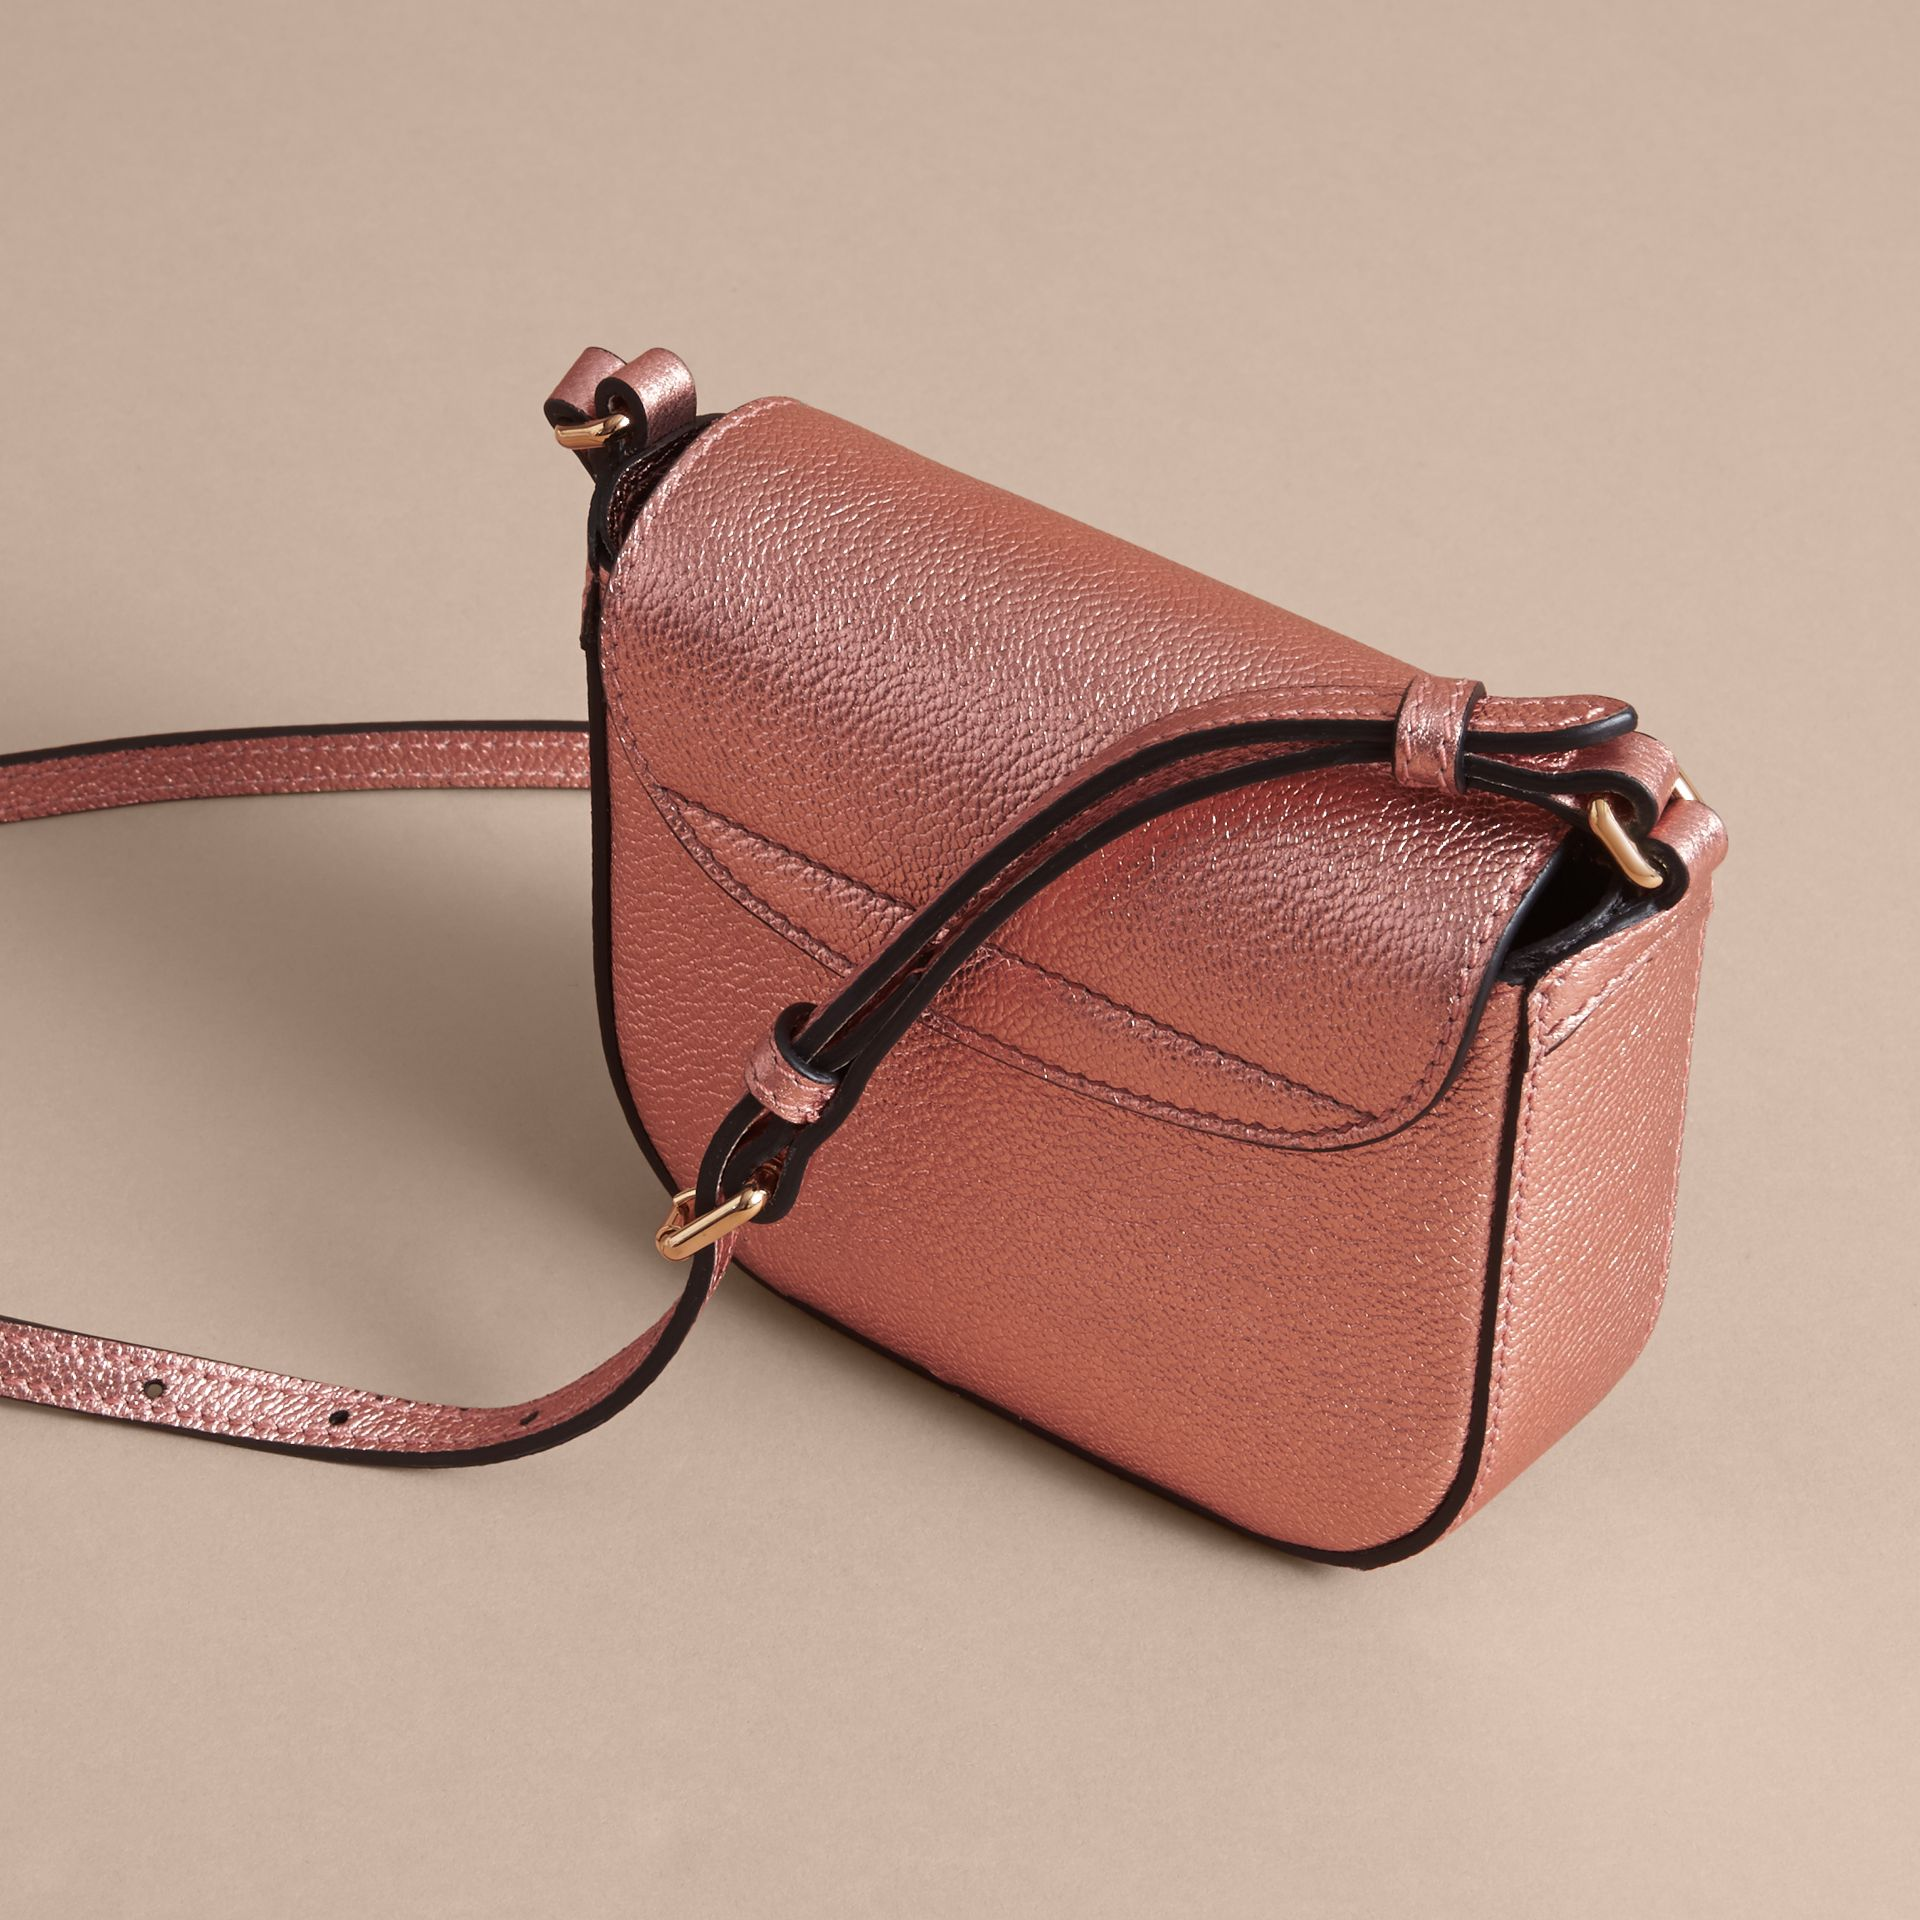 Metallic Leather Crossbody Bag in Copper Pink - Girl | Burberry - gallery image 2